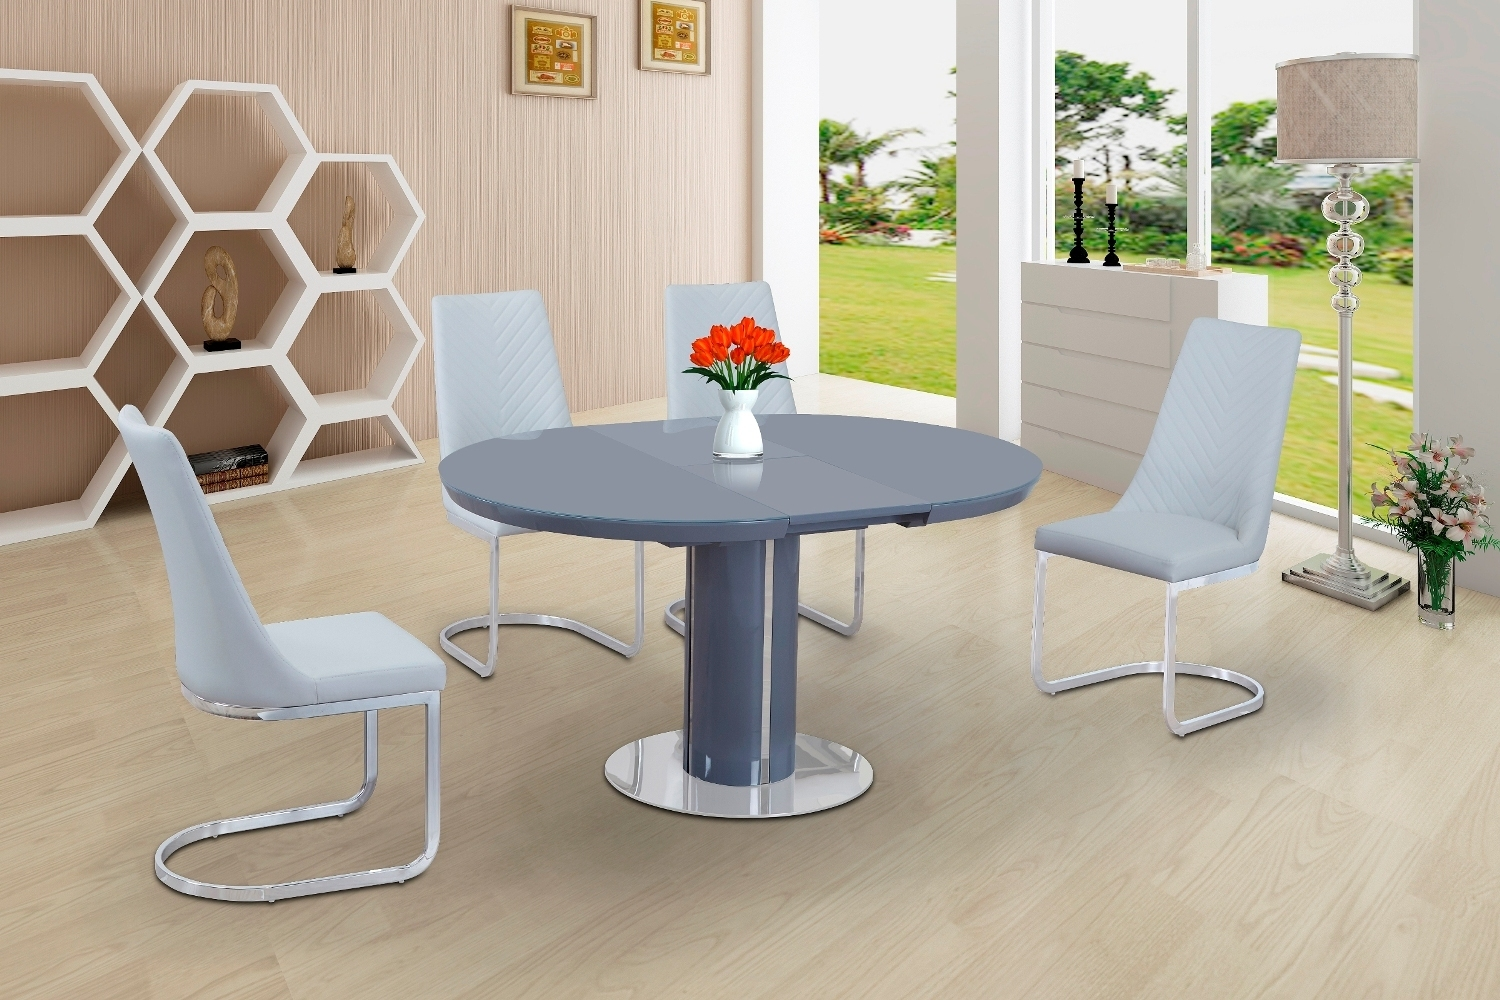 Round Grey Glass High Gloss Dining Table And 4 White Chairs Set EBay